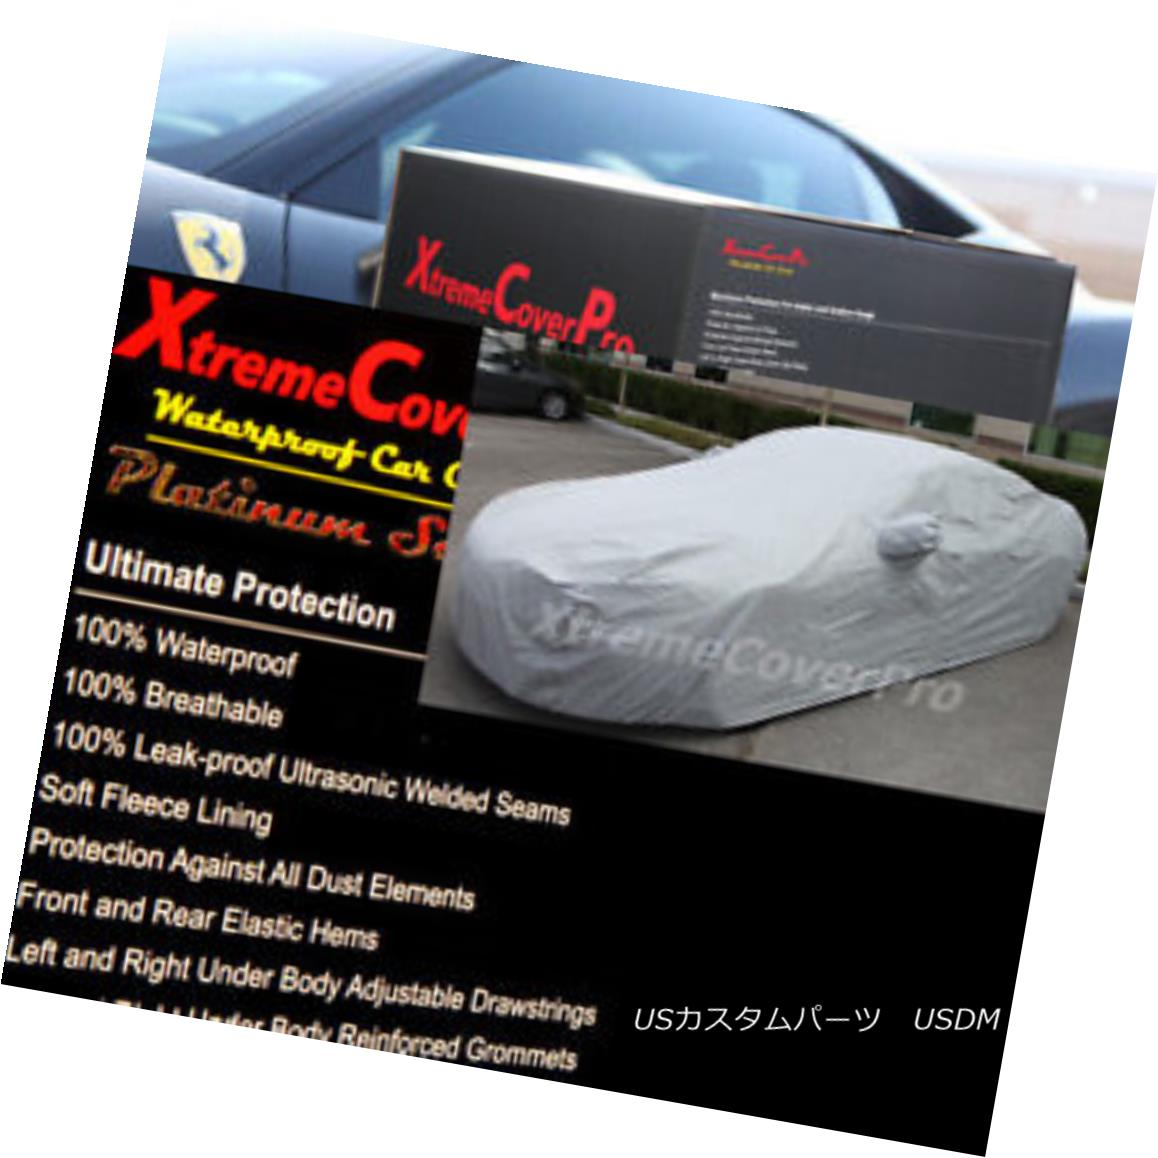 カーカバー 2016 2017 MASERATI GRAN TURISMO WATERPROOF CAR COVER W/MIRROR POCKET -GREY 2016 2017 MASERATI GRANTURISMO防水カーカバー付き/ミラーポケット - グレー